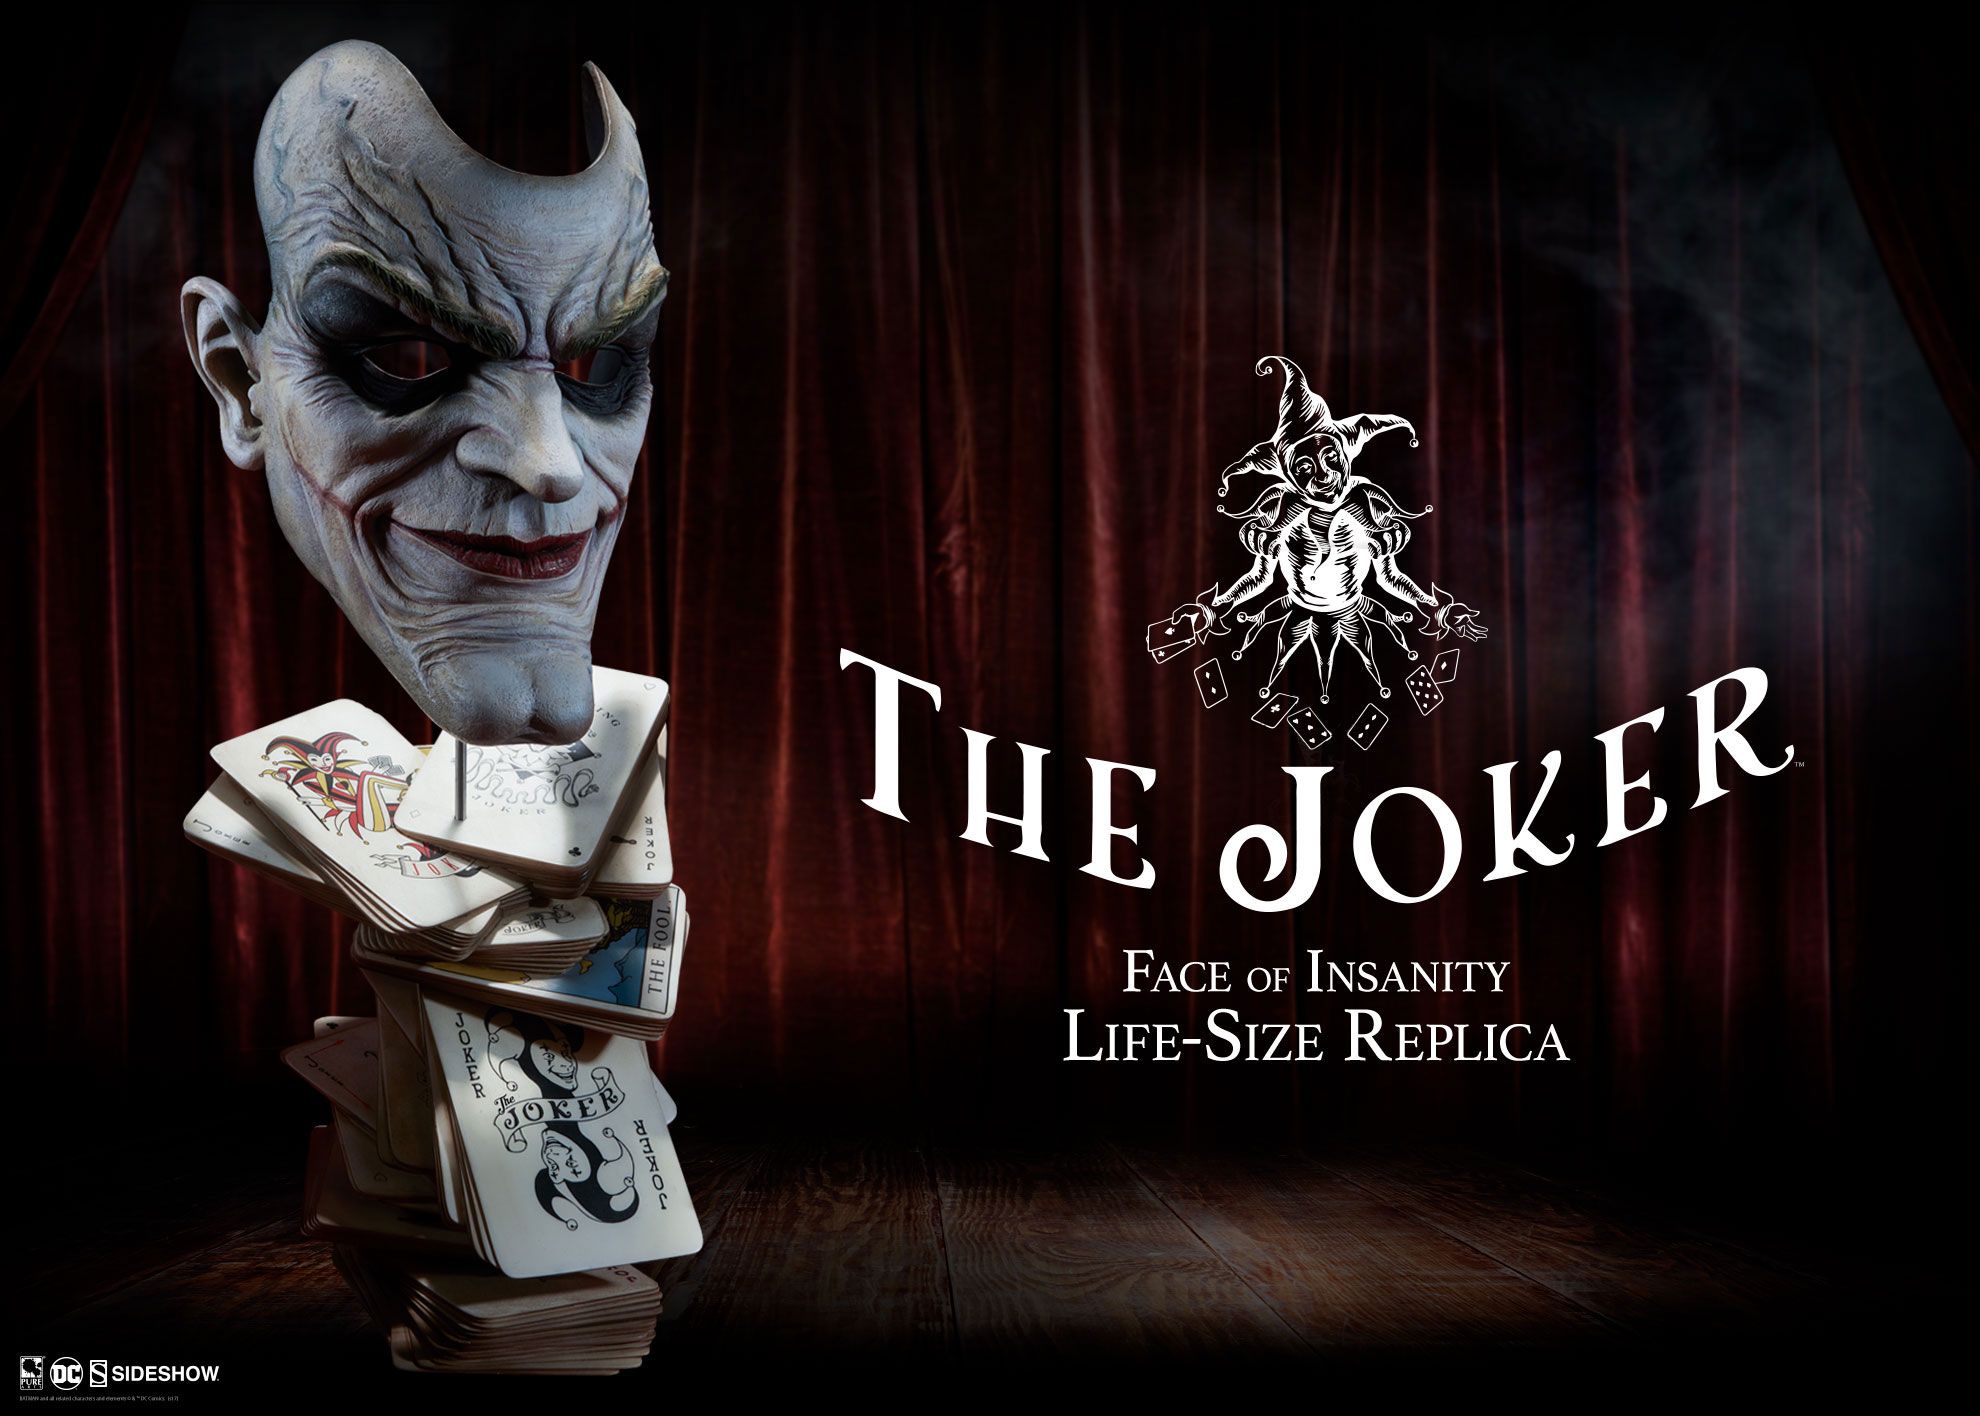 the-joker-face-of-insanity-life-size-replica-prop